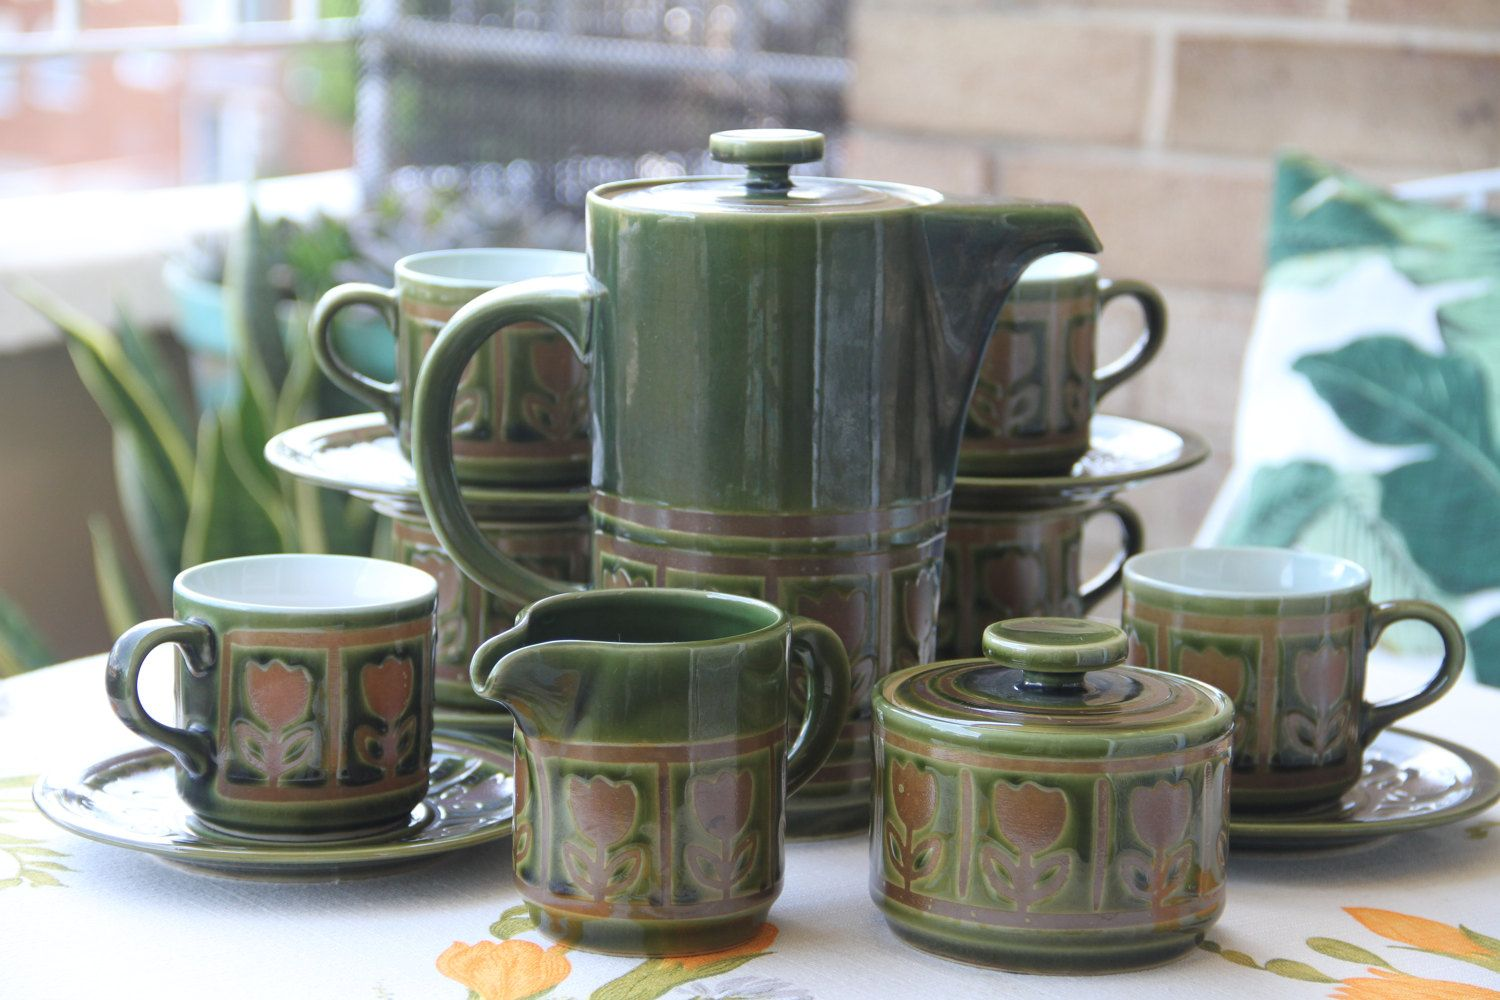 Vintage Retro Ceramic Made in Japan Coffee Pot Set  Green Glaze  with Tulip Pattern by VintageCollateral on Etsy